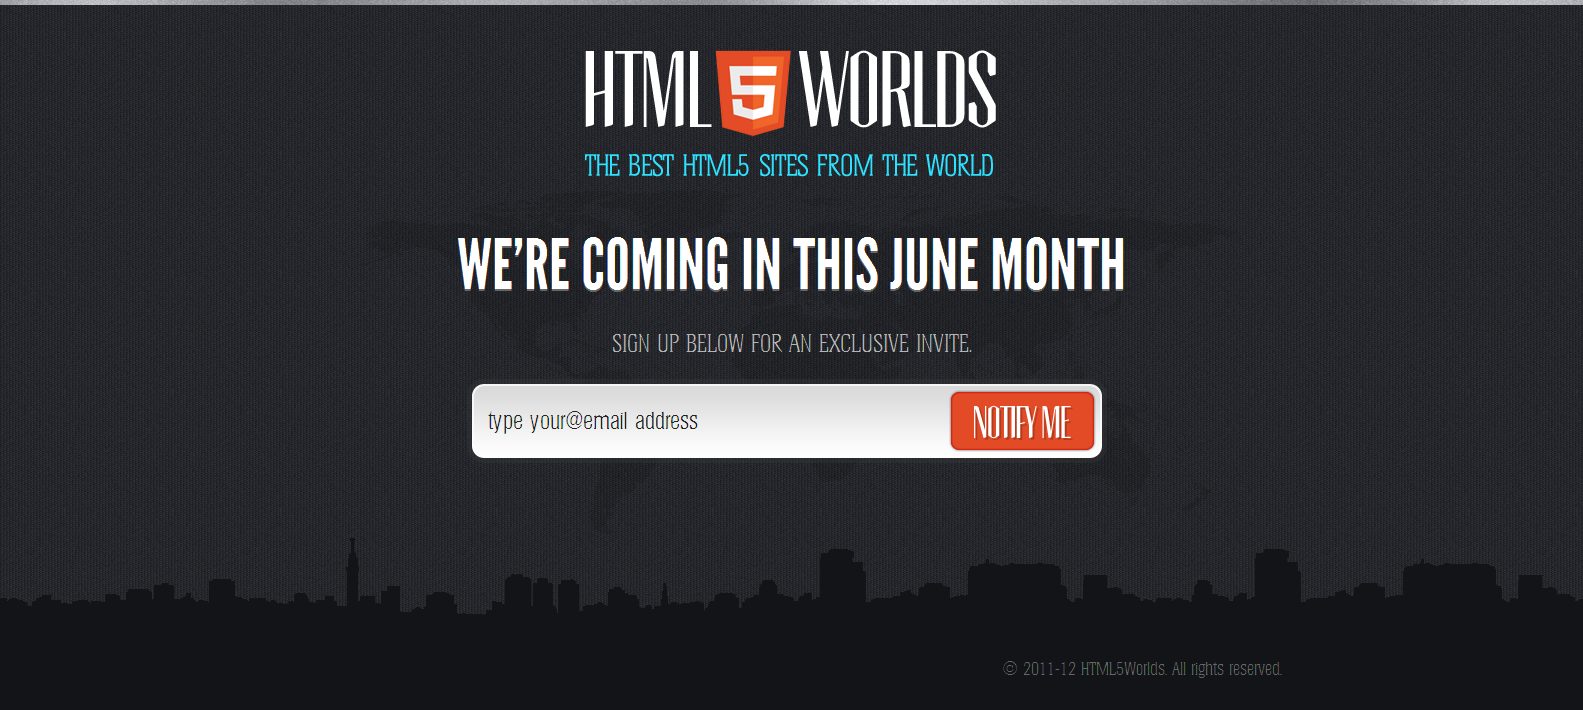 Html5Worlds Website Screenshot